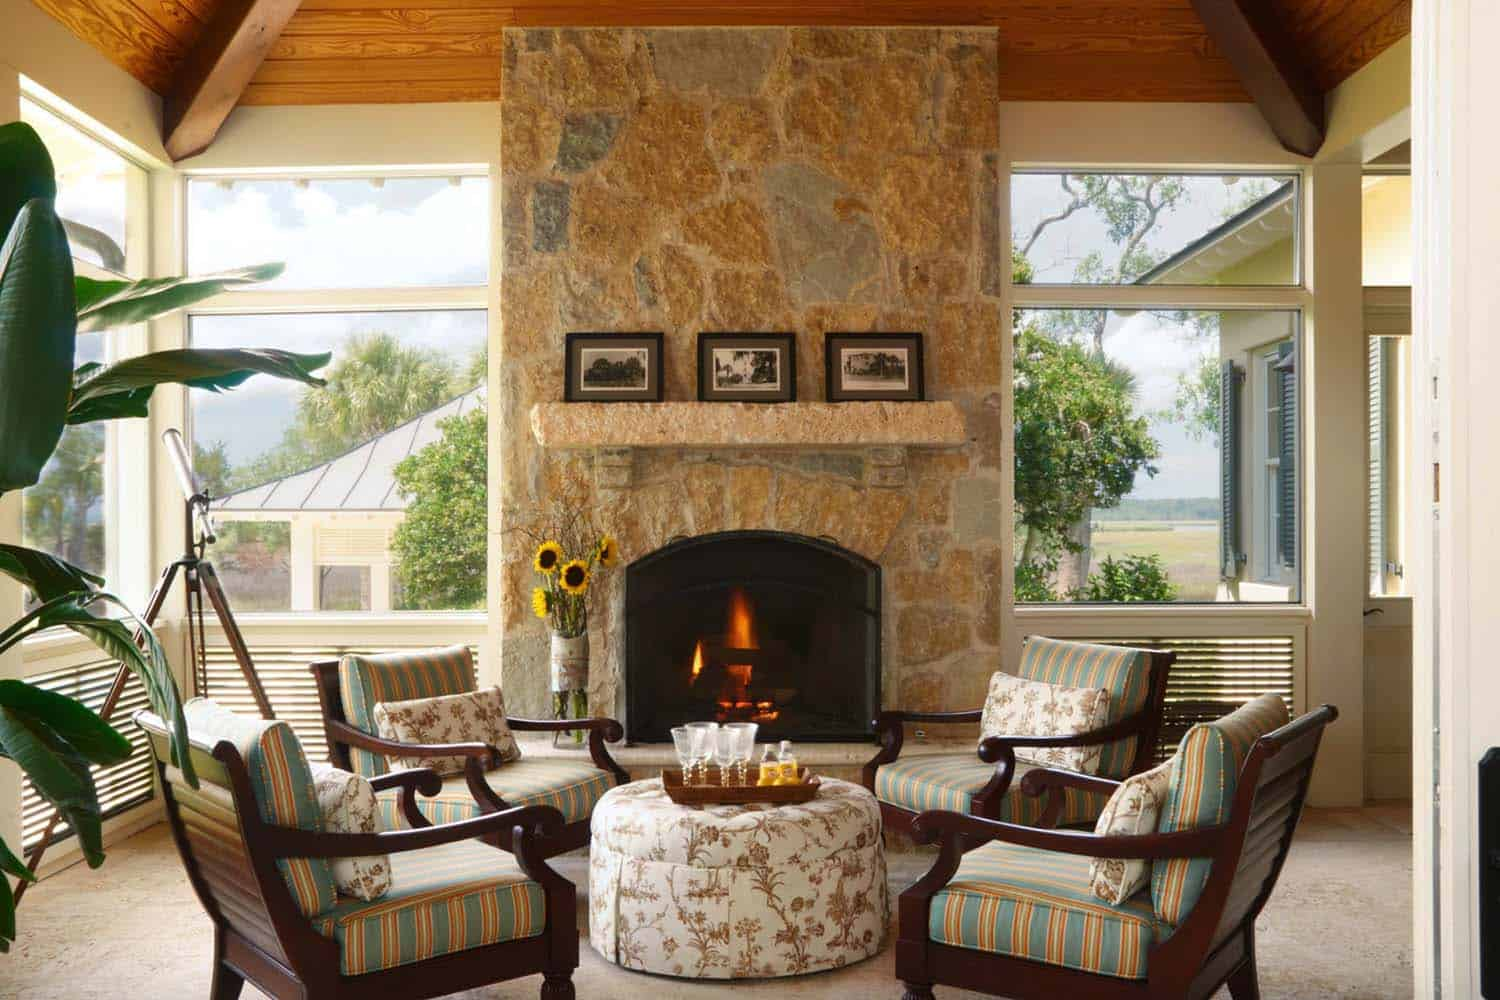 screened porch design ideas 01 1 kindesign - Screened In Porch Design Ideas